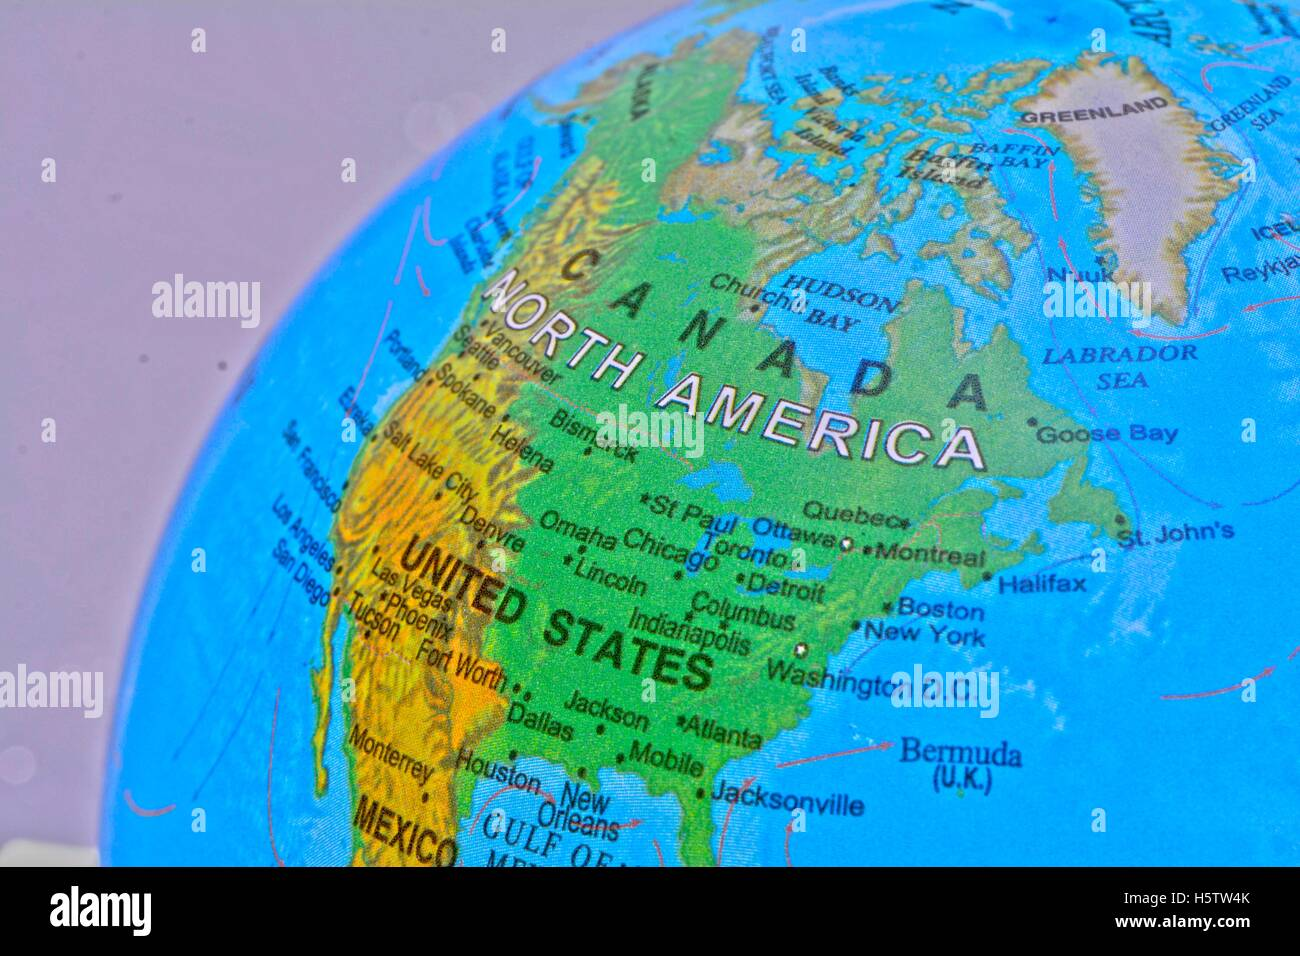 United States Of America And Canada Map Stock Photos & United States ...